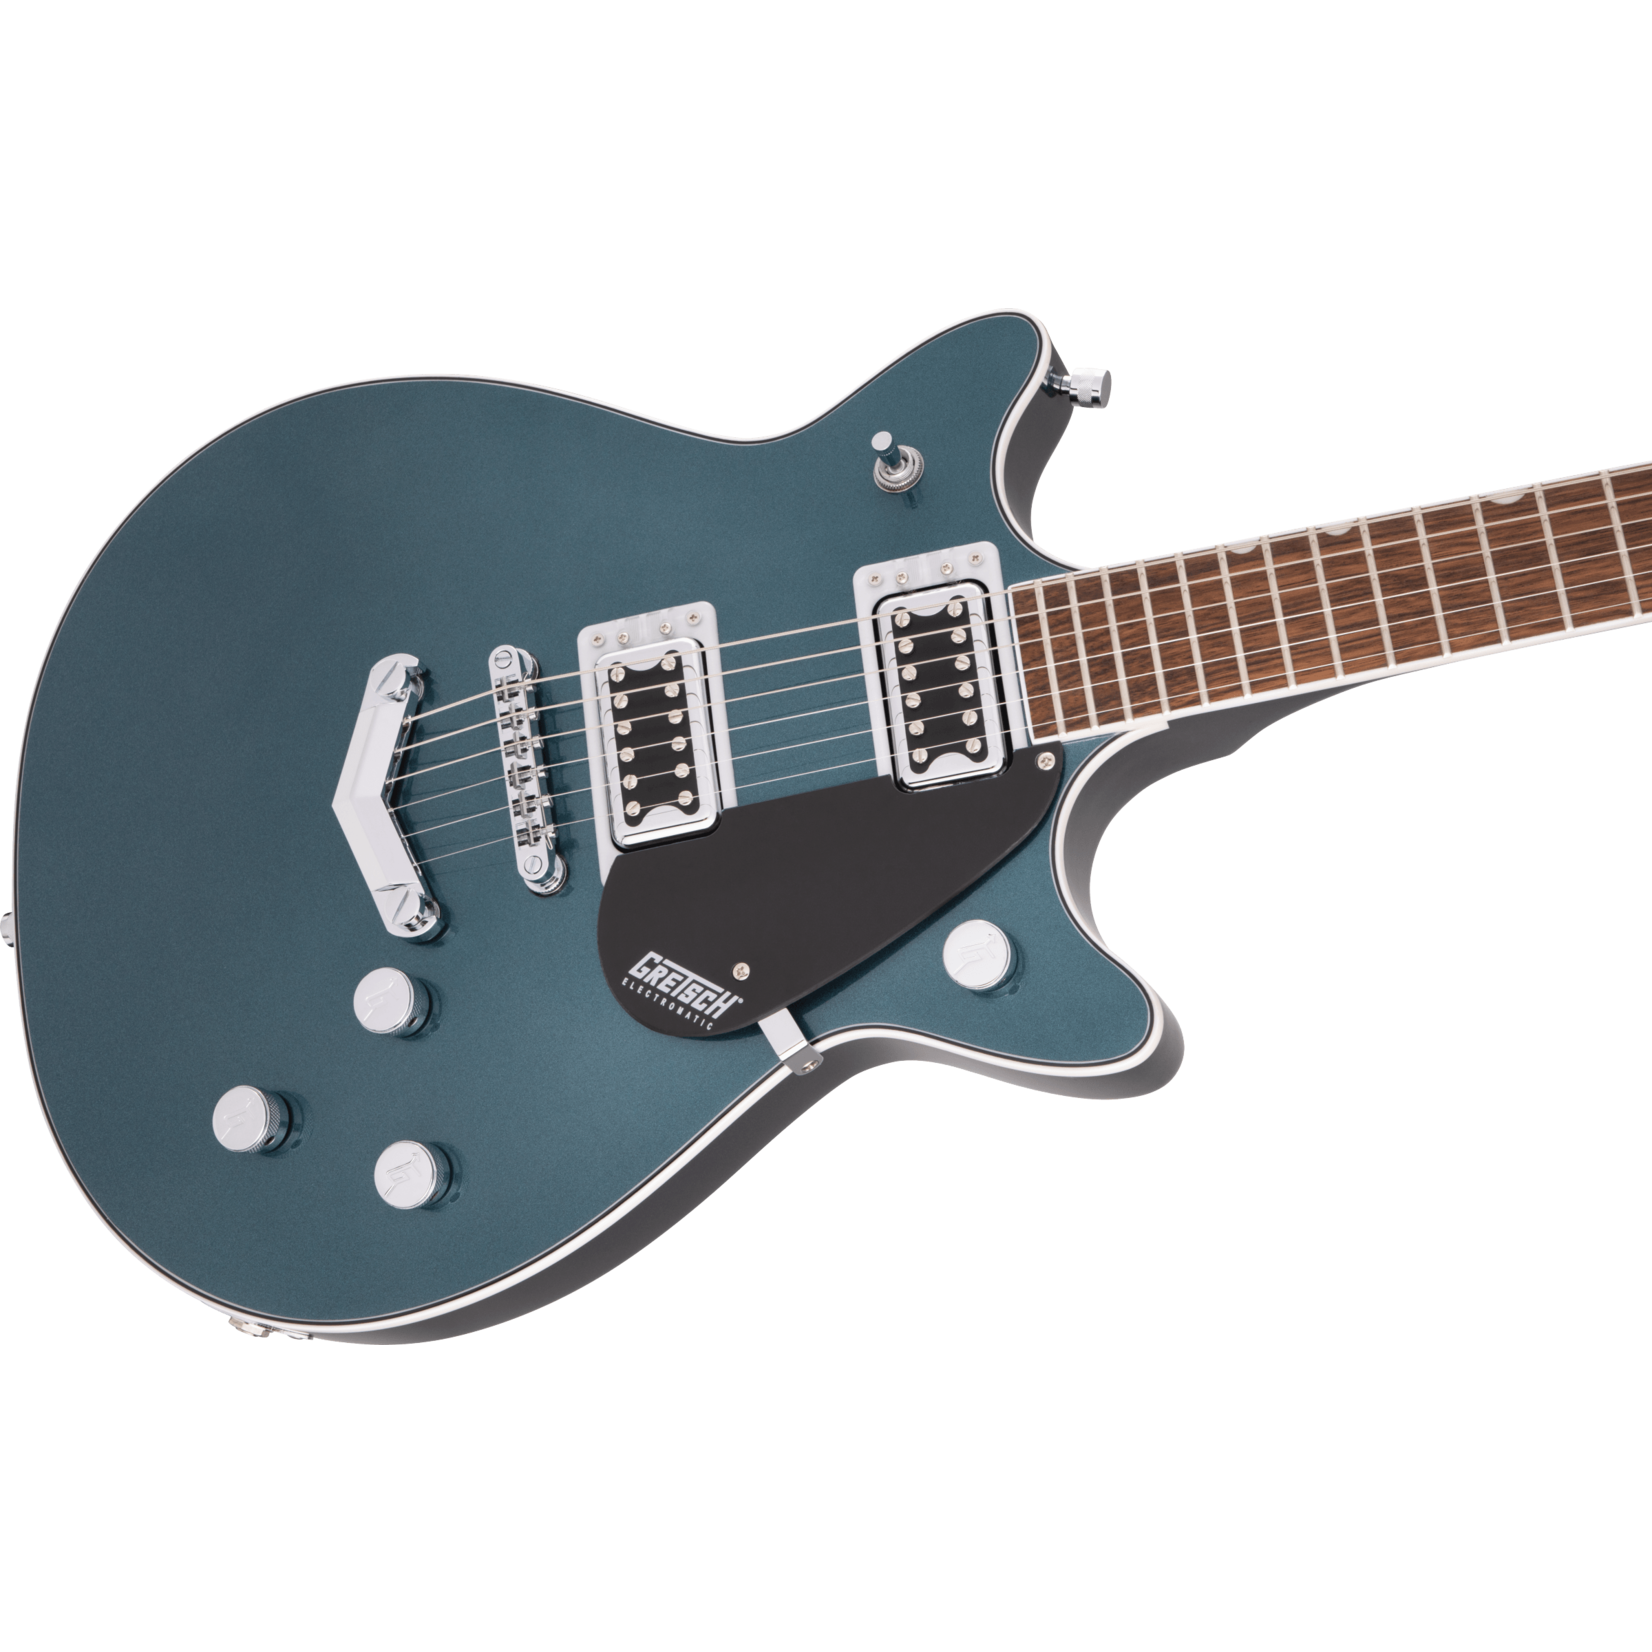 Gretsch Gretsch G5222 Electromatic Double Jet BT with V-Stoptail